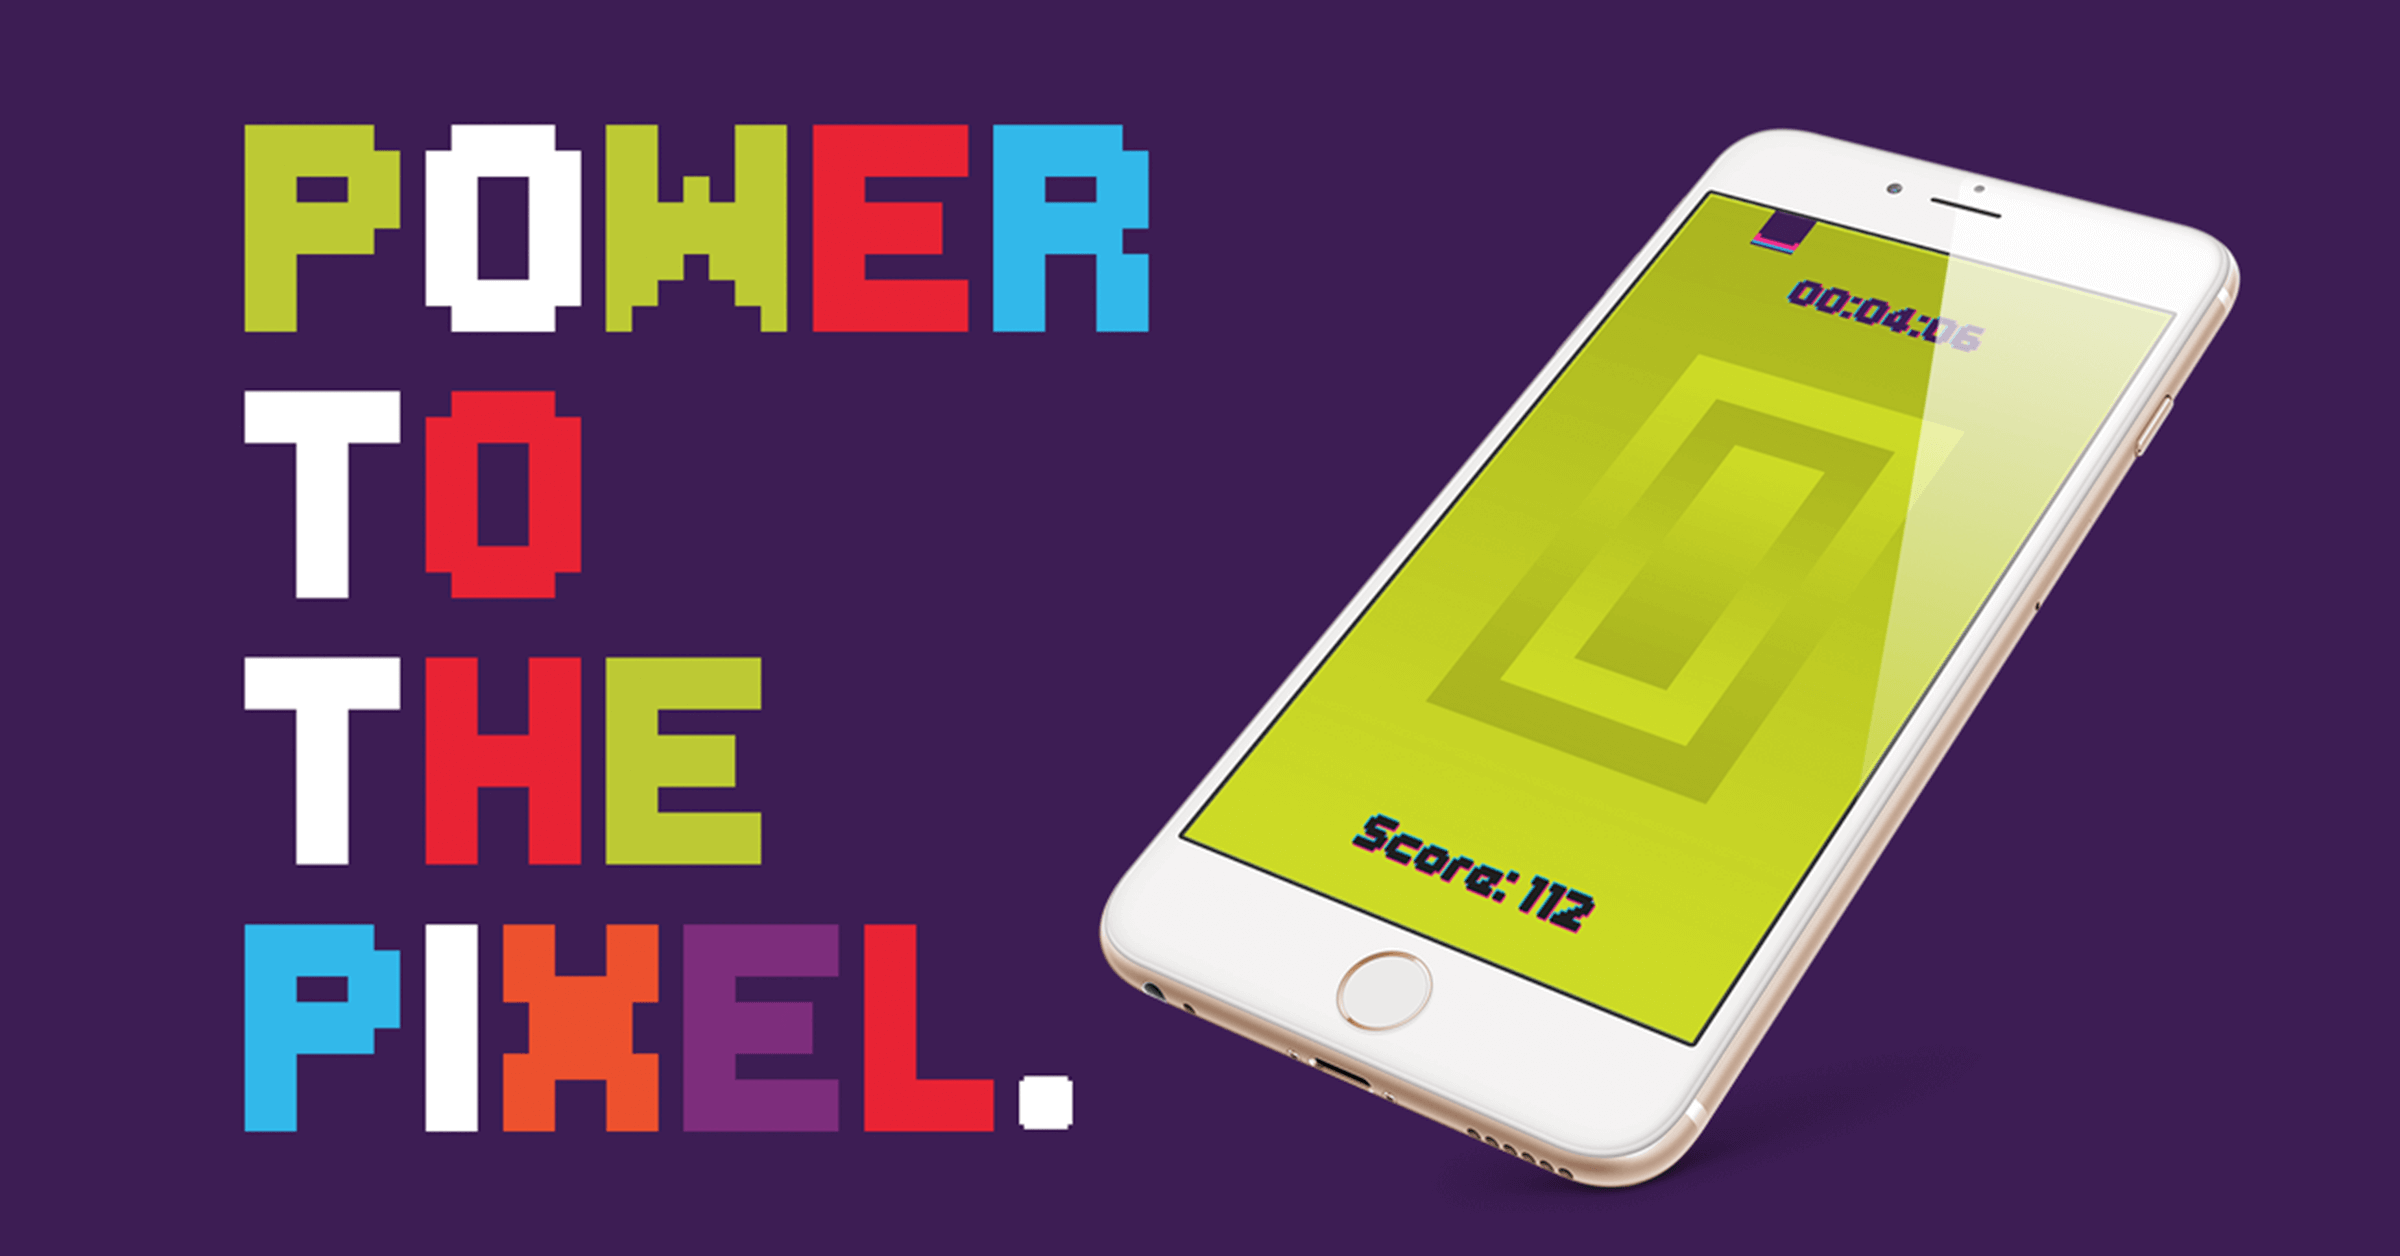 Can you control the Pixel (Dash)?